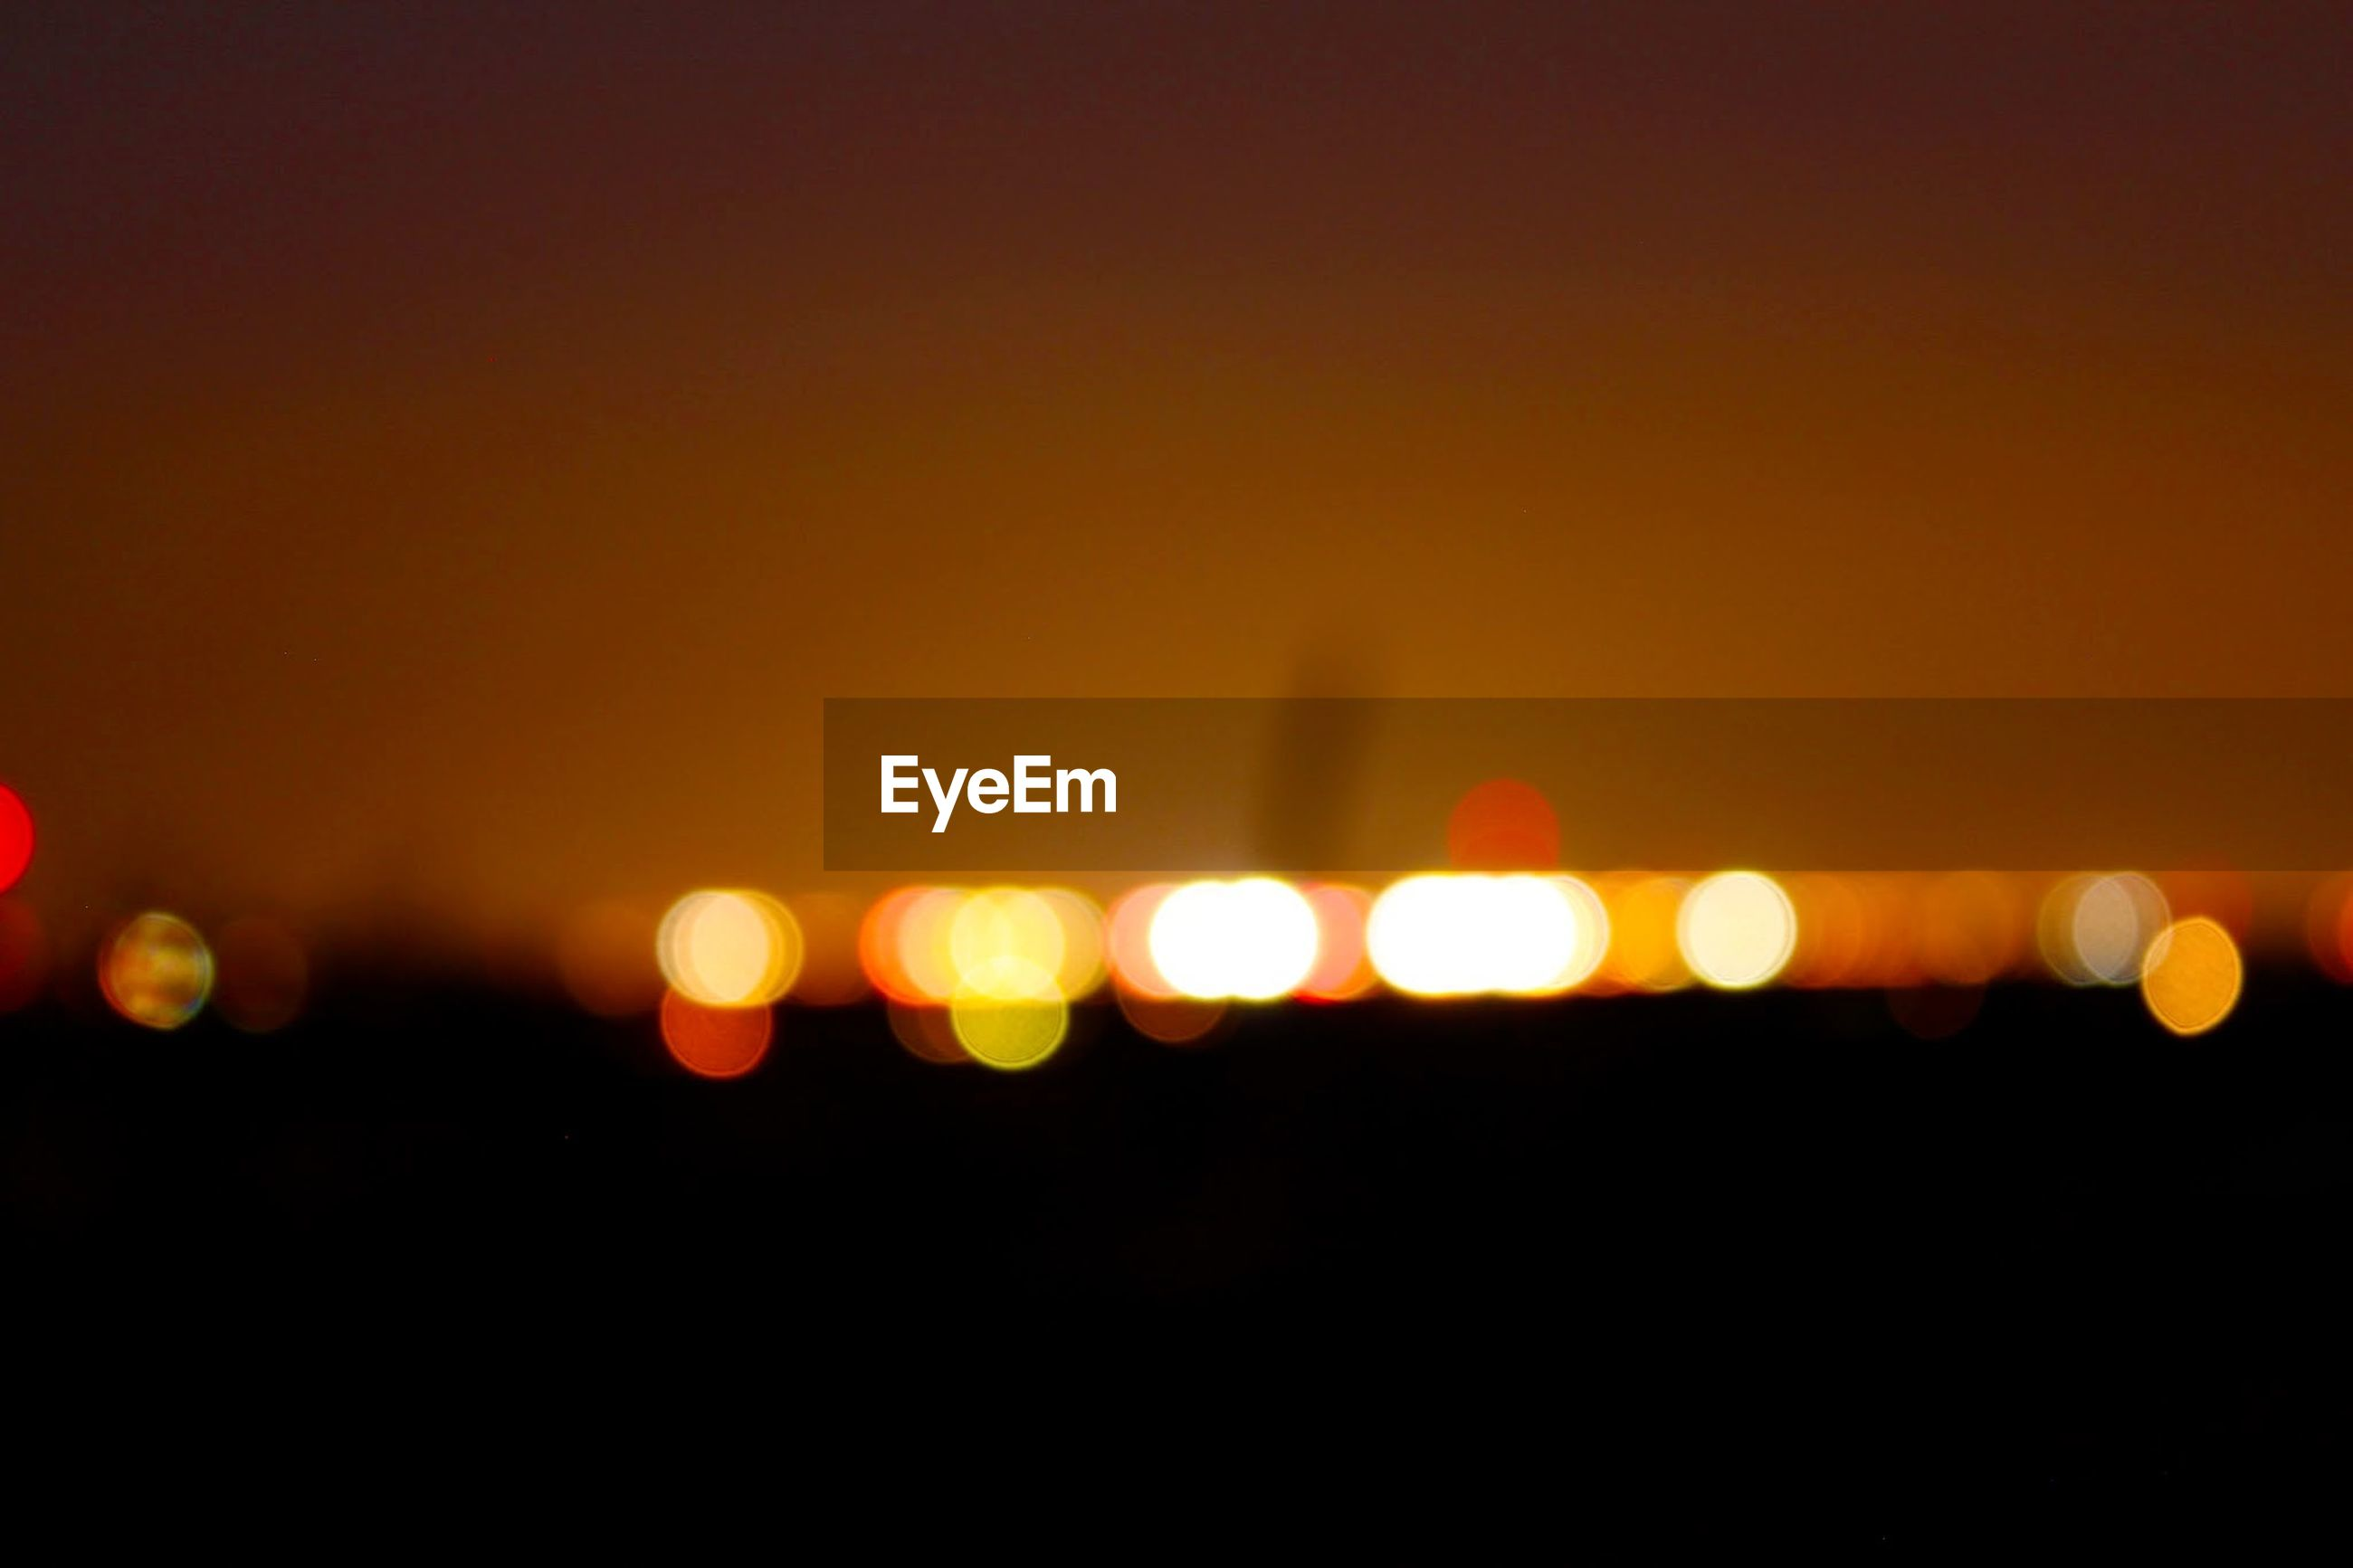 sunset, copy space, orange color, illuminated, defocused, sun, circle, night, dark, beauty in nature, scenics, clear sky, glowing, no people, nature, tranquility, silhouette, idyllic, sky, outdoors